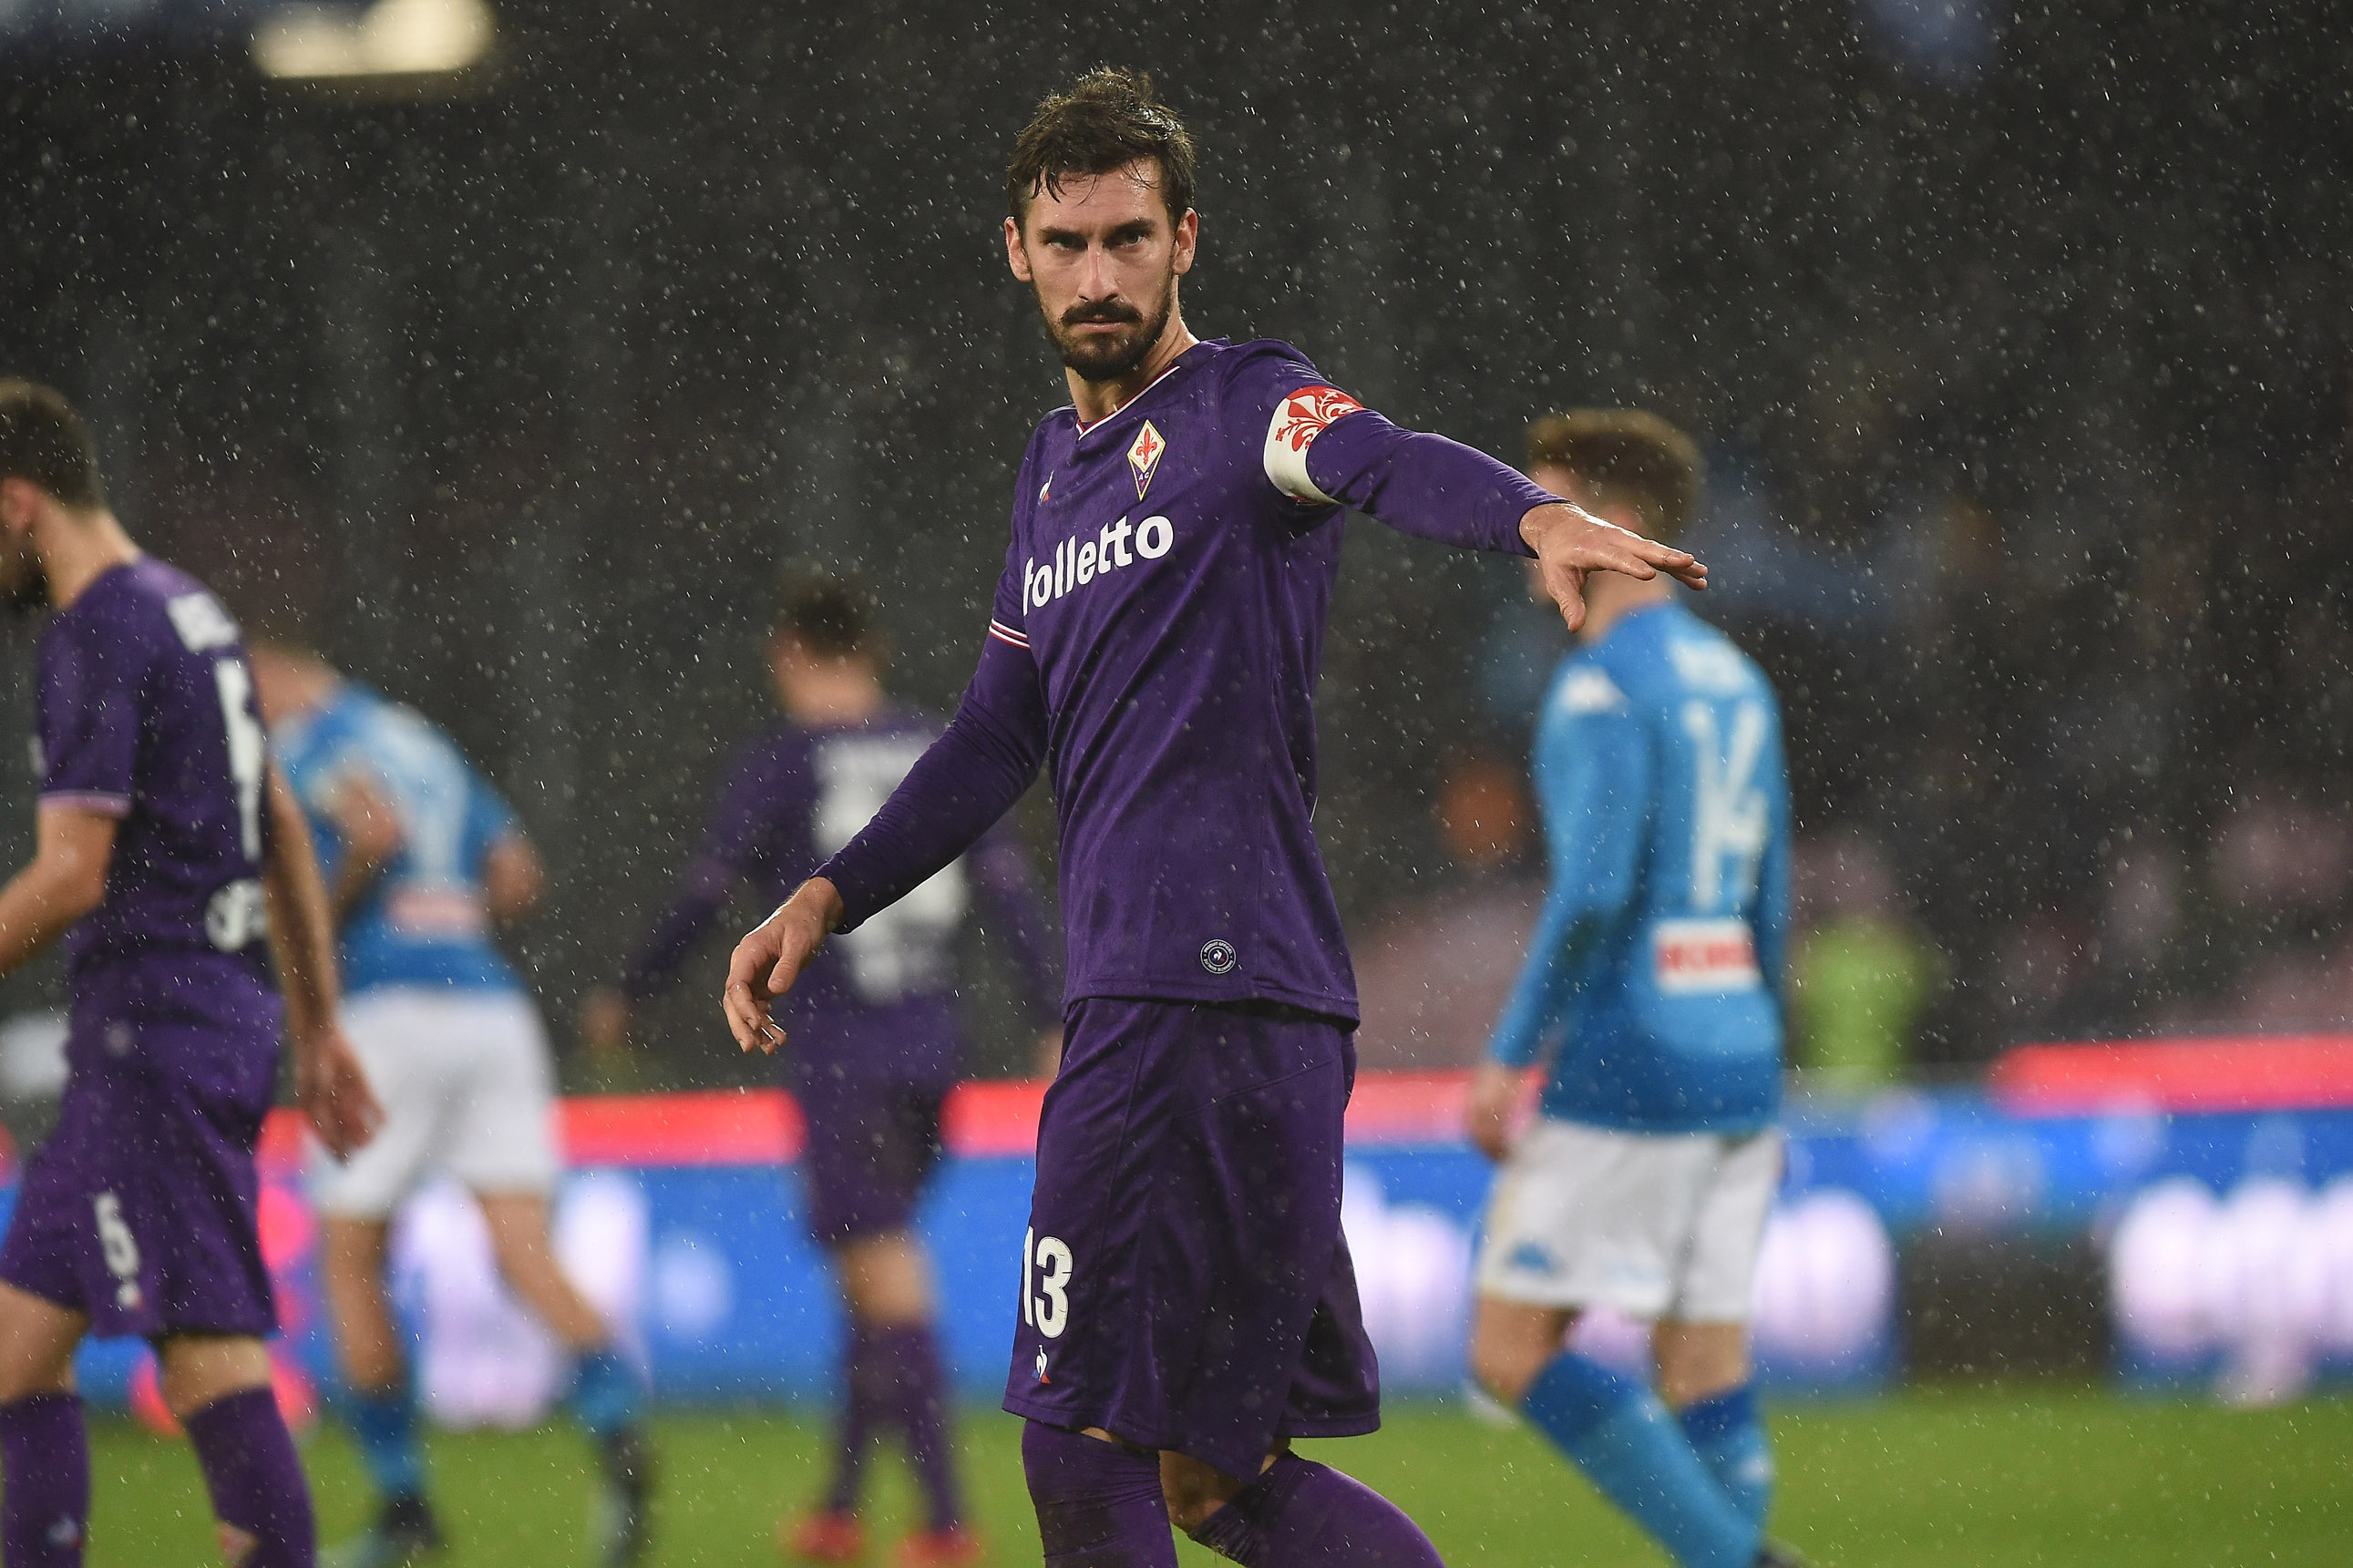 Fiorentina captain Davide Astori dies at age 31